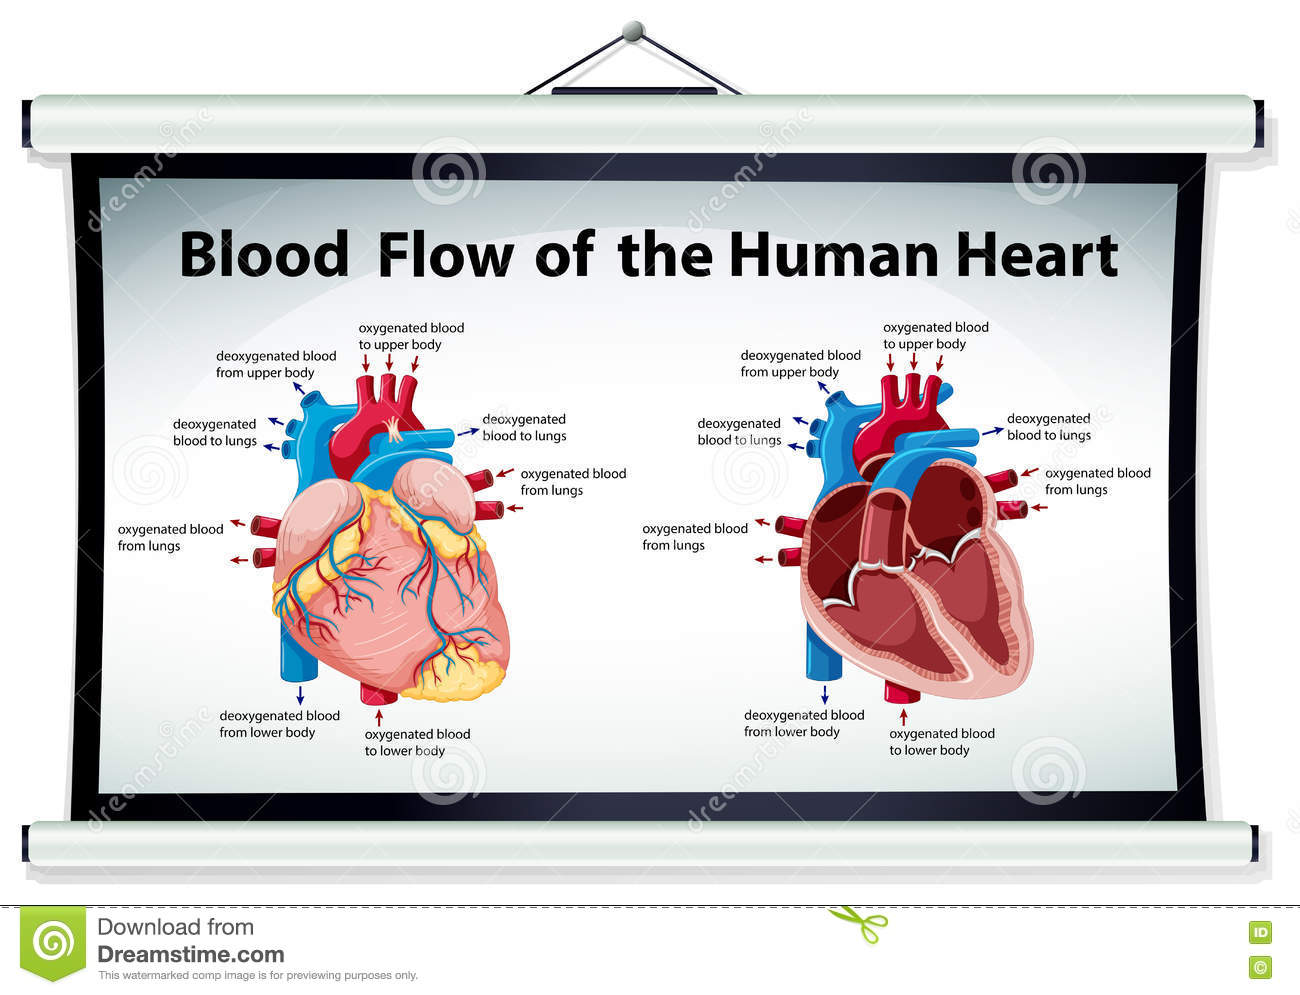 hight resolution of diagram showing blood flow in human heart